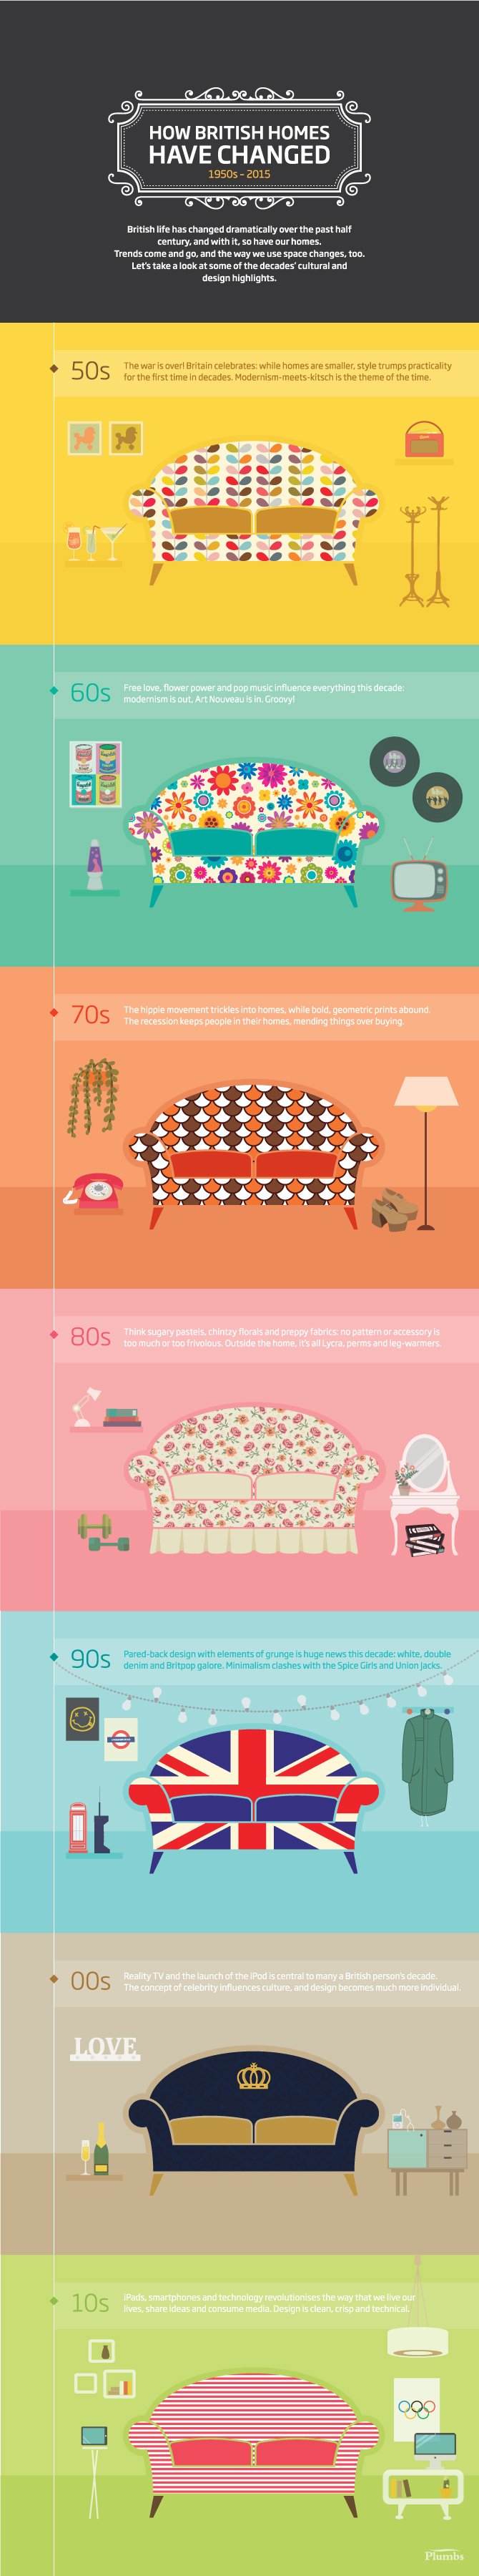 How British Homes Have Changed 1950s - 2015 by Plumbs